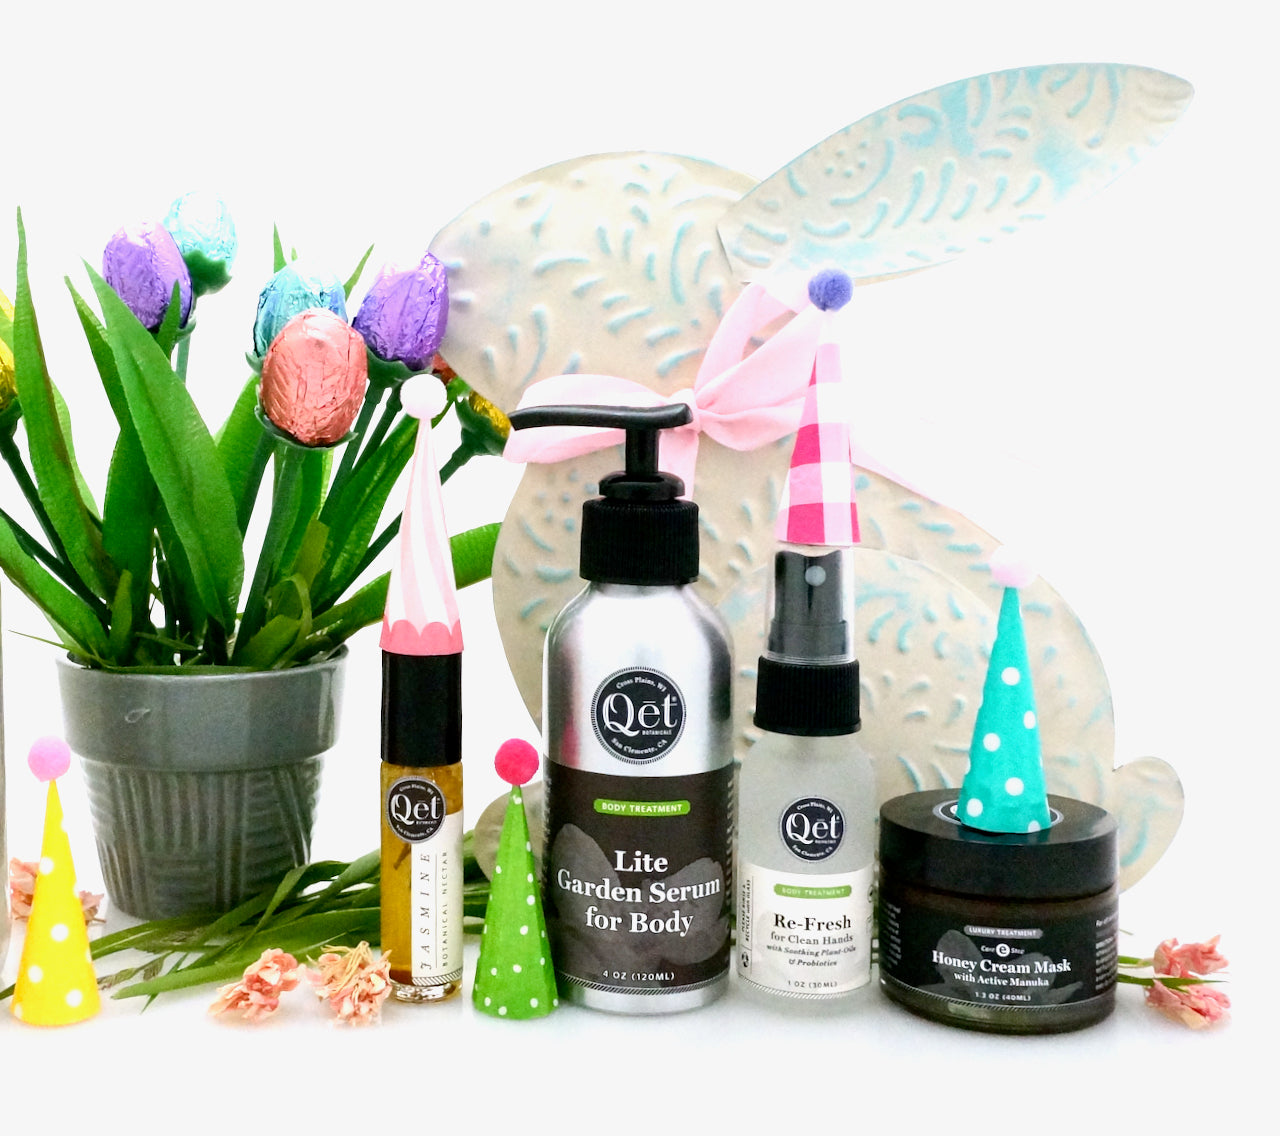 Qet-Botanicals-Cruelty-Free-Leaping-Bunny-Certified